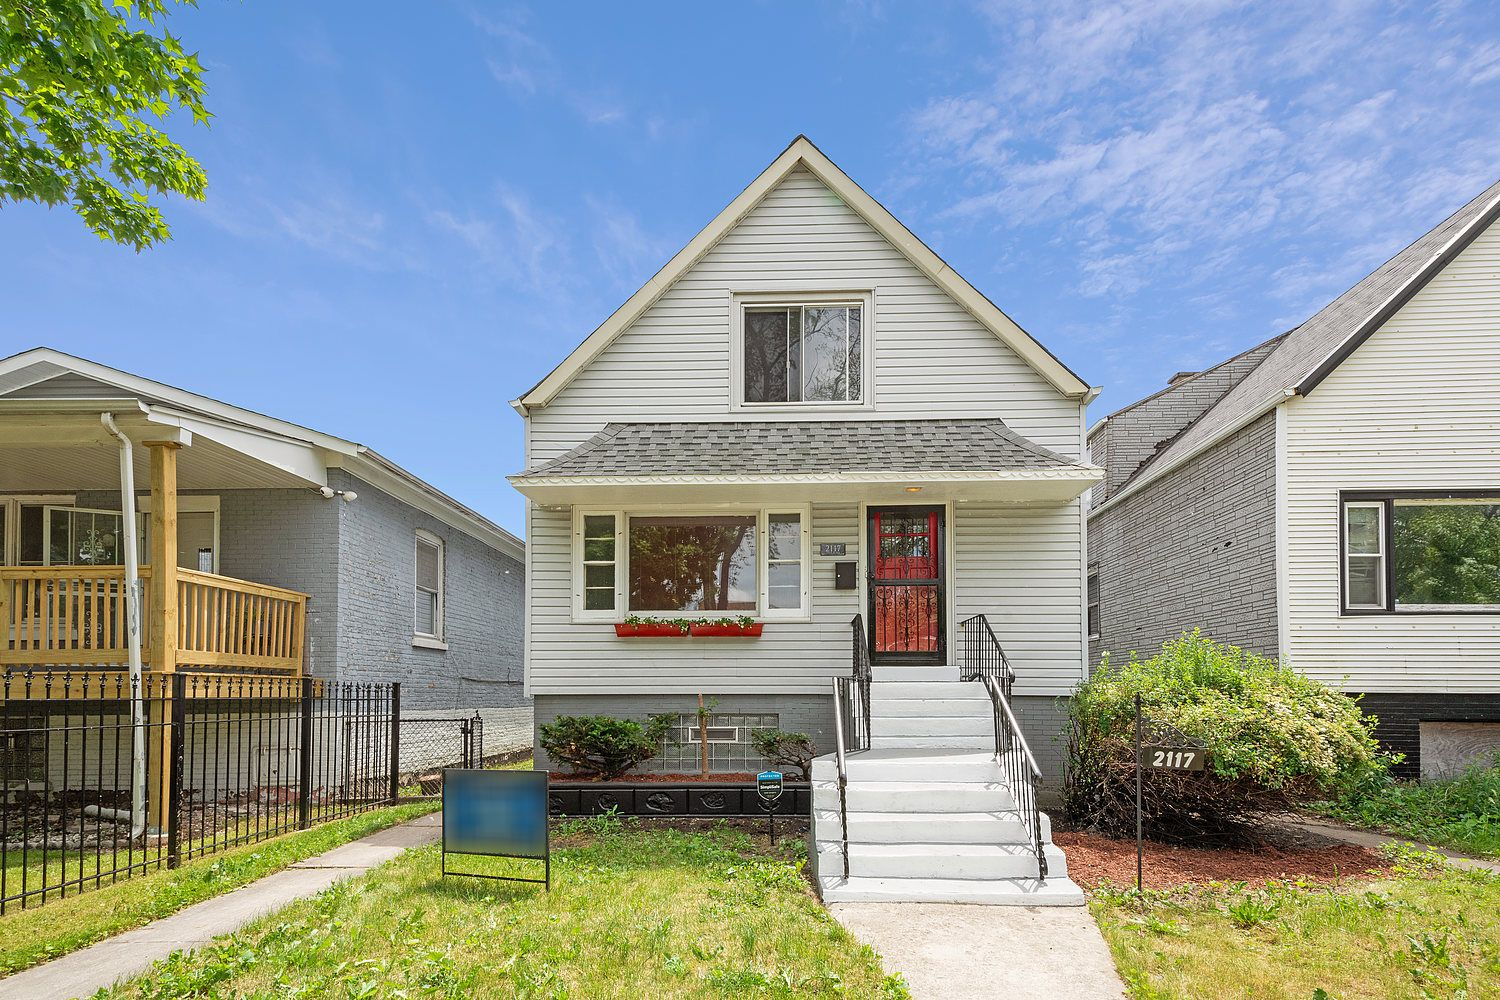 Main Photo: 2117 W 54th Place in Chicago: CHI - New City Residential for sale ()  : MLS®# 11101715